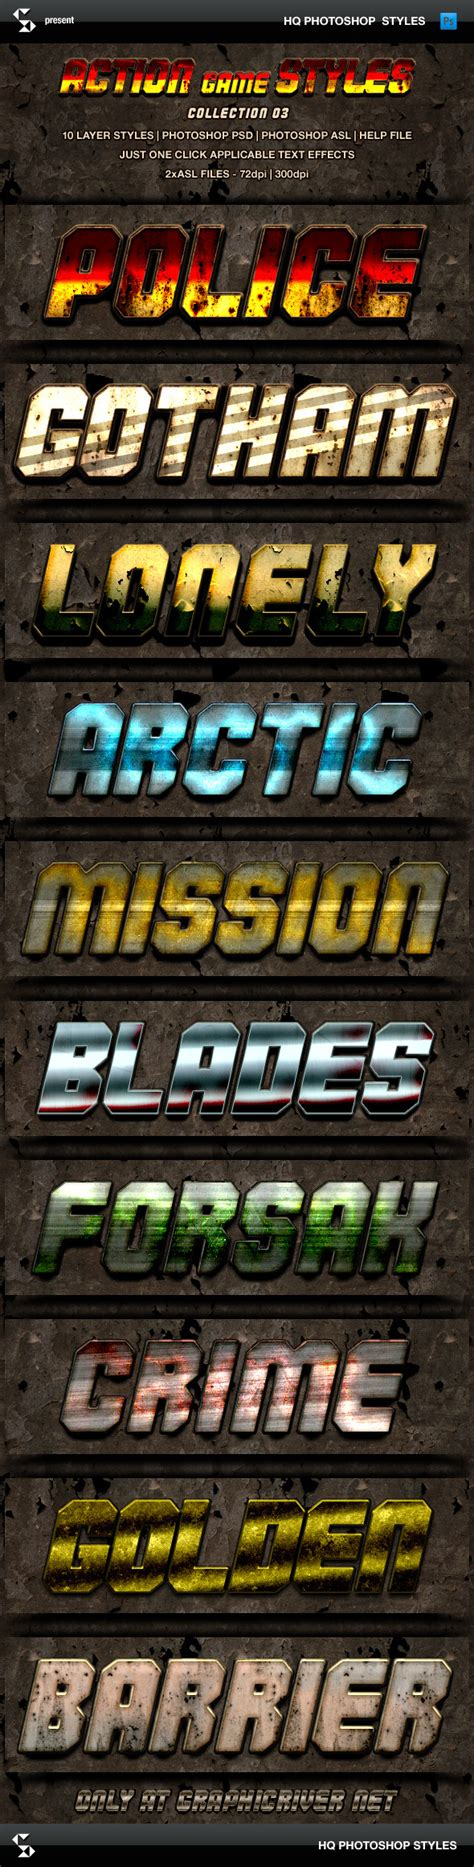 dafont commando action game styles collection 3 graphicriver